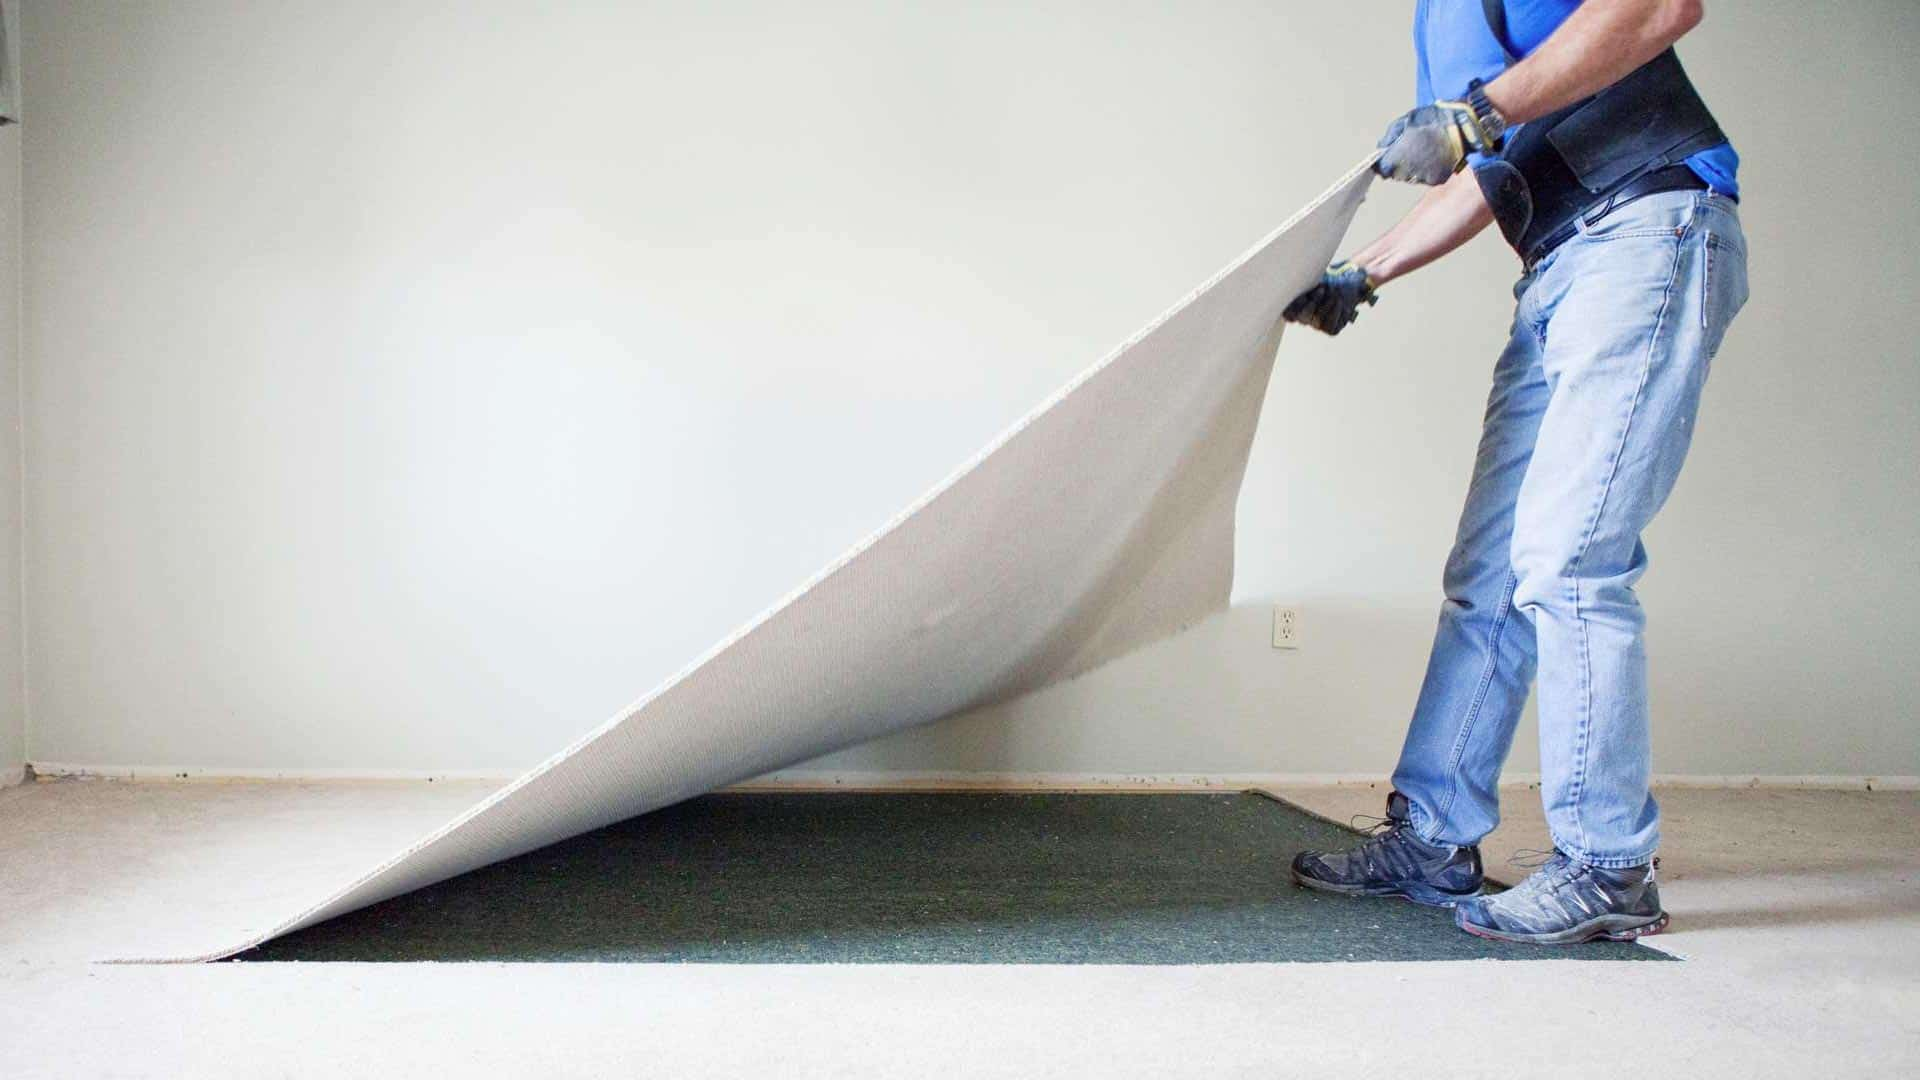 How Often Should Carpet be Replaced